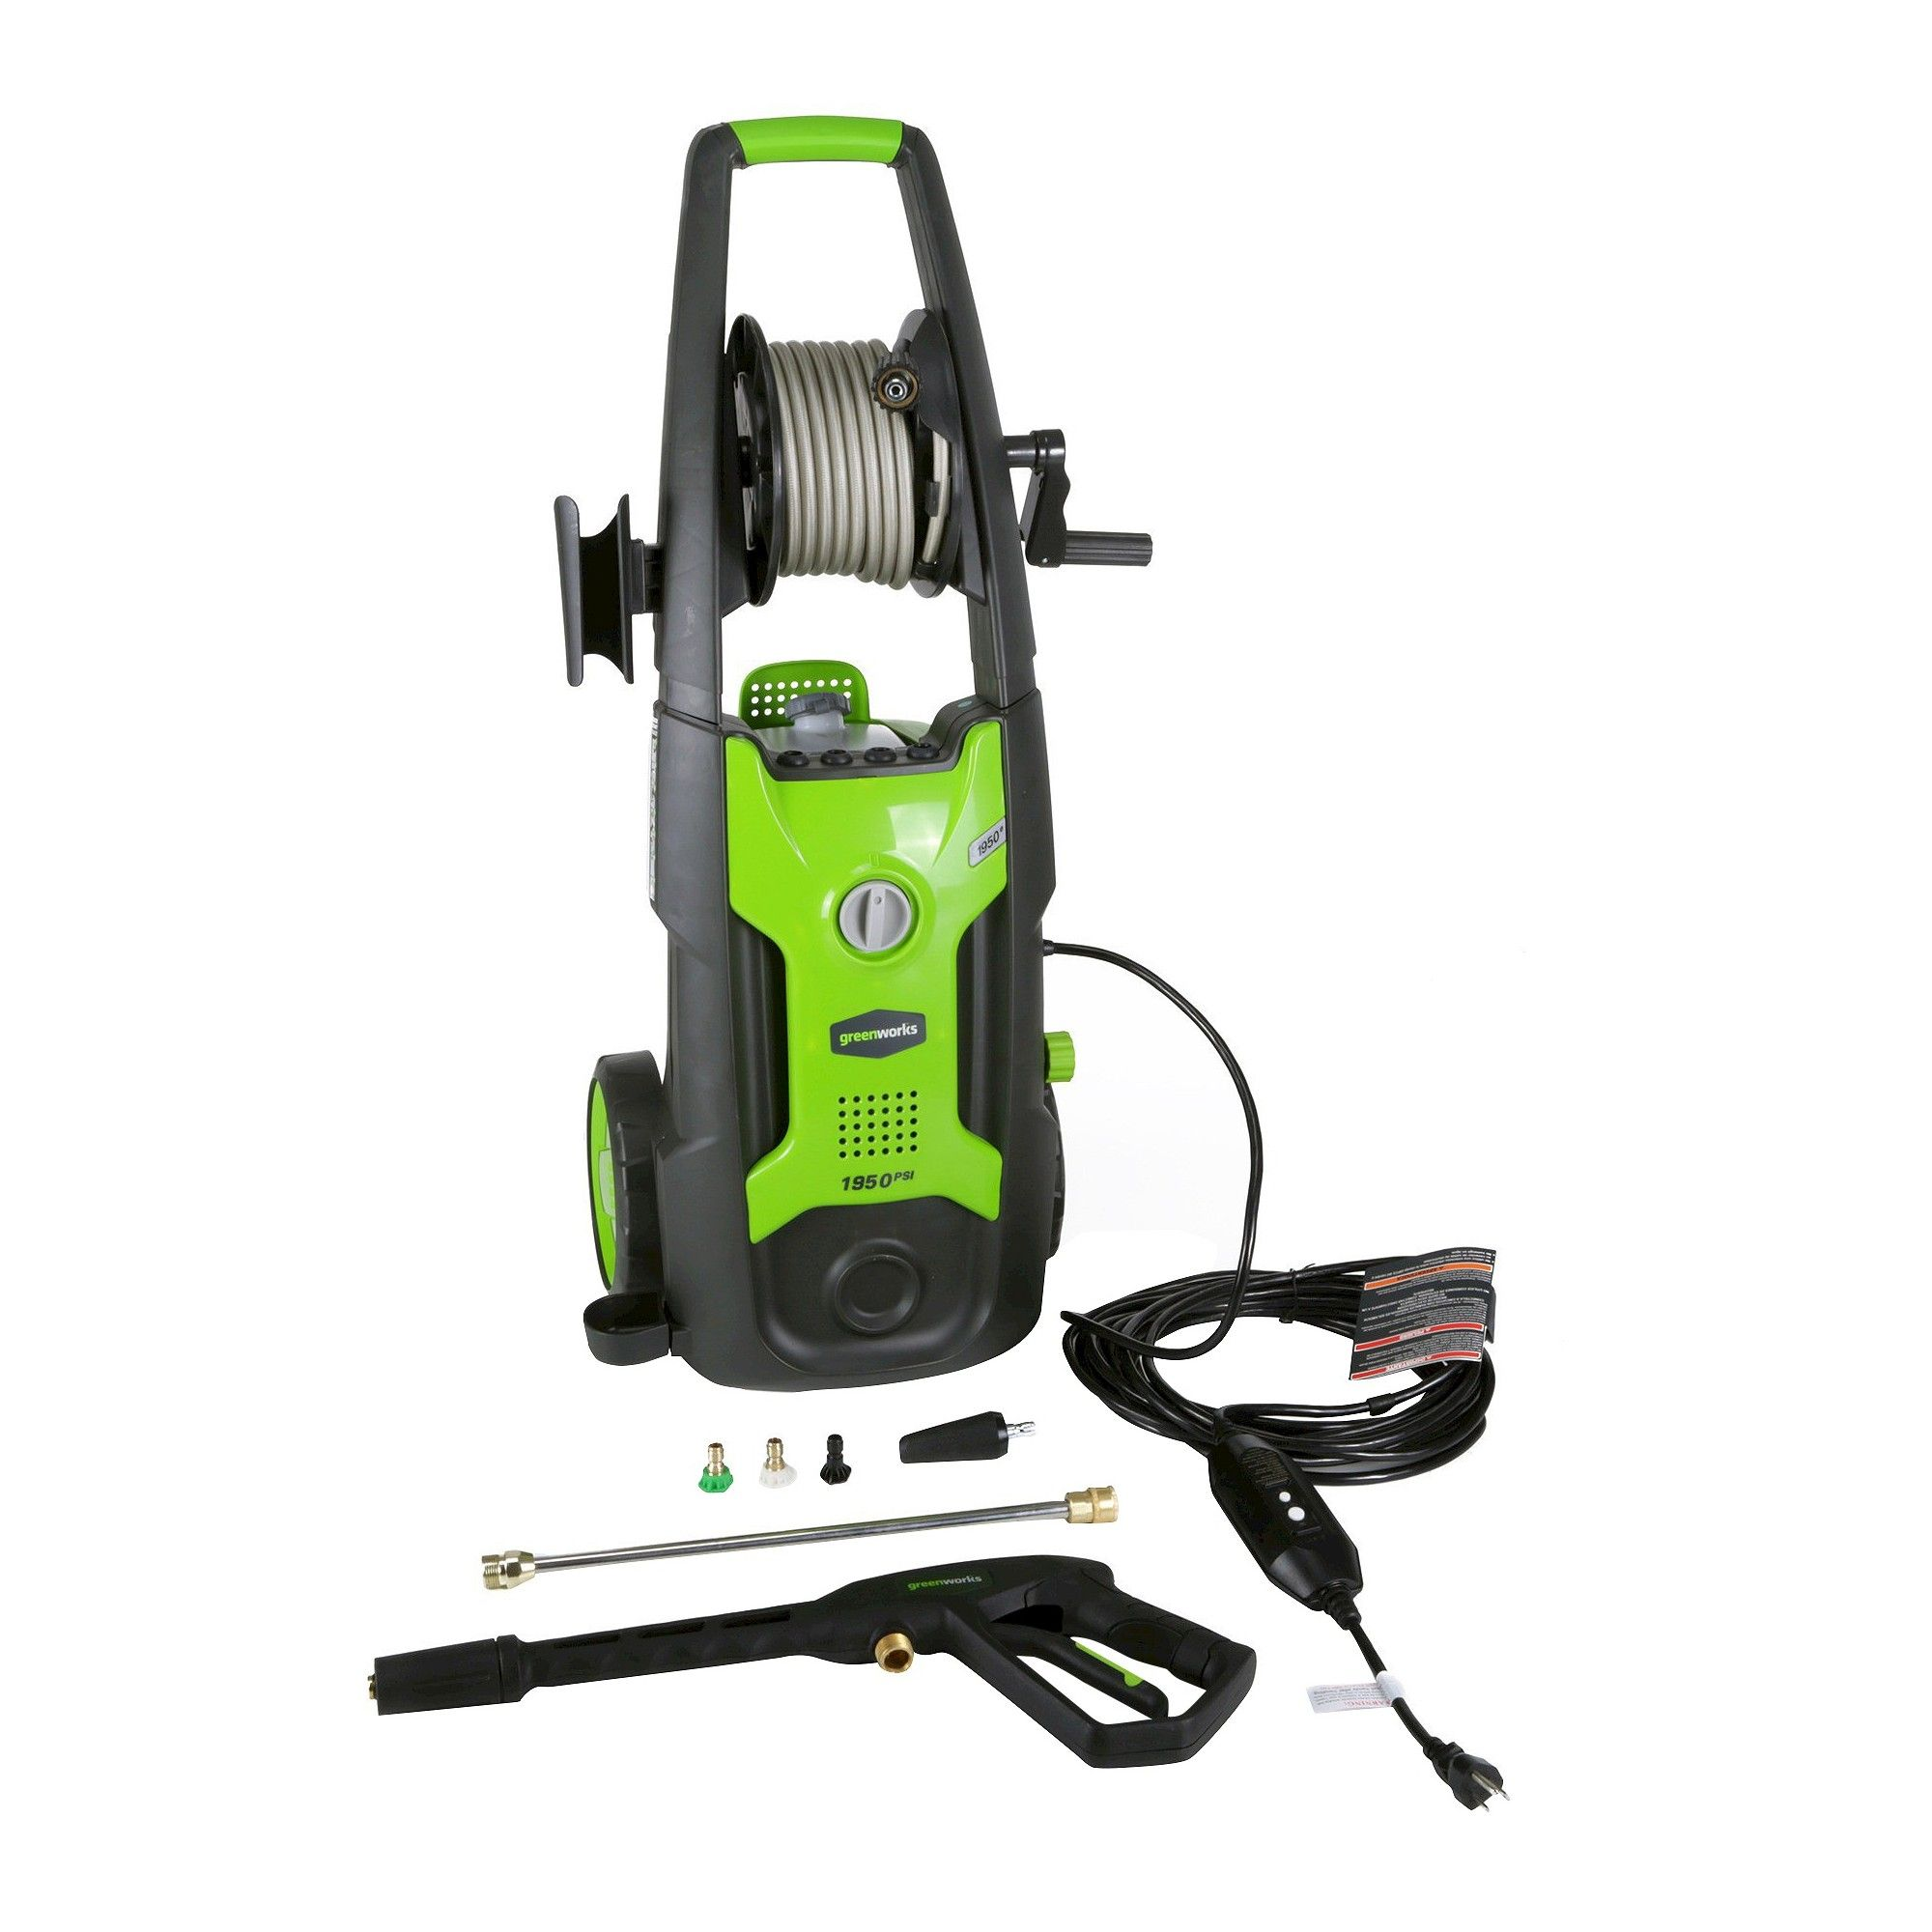 1951 psi vertical pressure washer includes hose and nozzle exotic 1951 psi vertical pressure washer includes hose and nozzle exotic green fandeluxe Choice Image